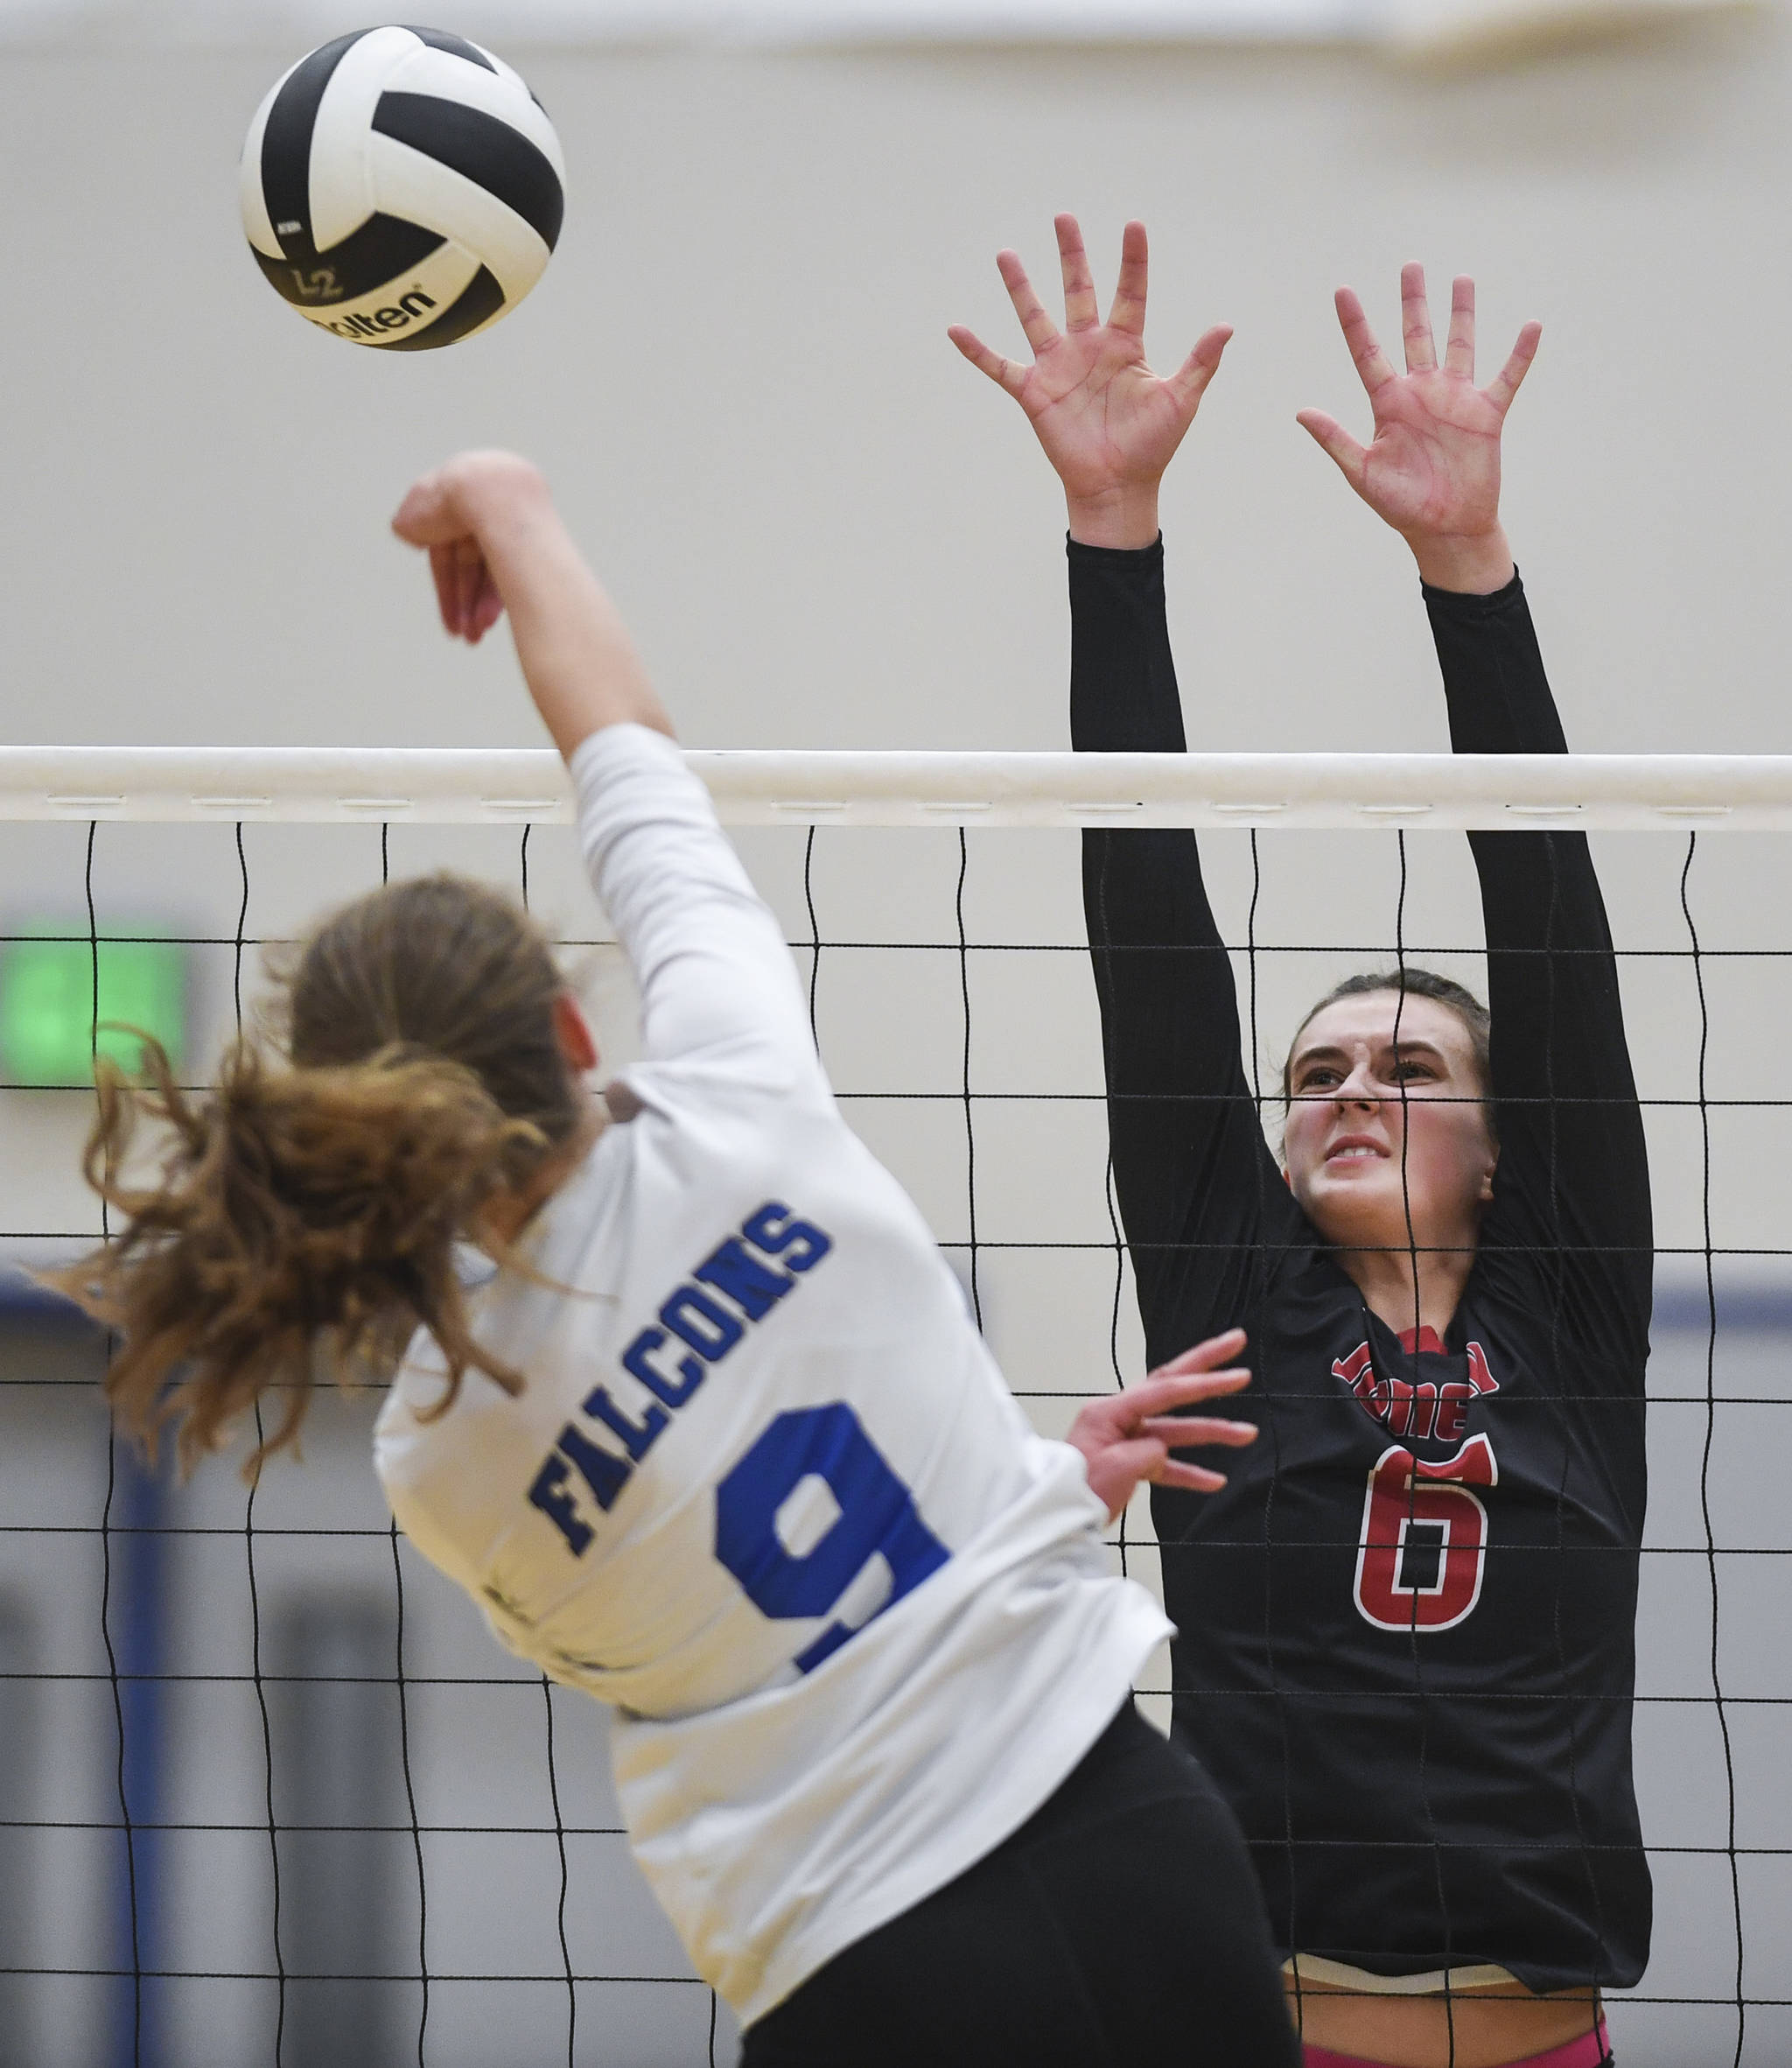 Juneau-Douglas' Addie Prussing, right, attempts a block against Thunder Mountain's Sophia Harvey at Thunder Mountain High School on Friday, Oct. 4, 2019. (Michael Penn | Juneau Empire)